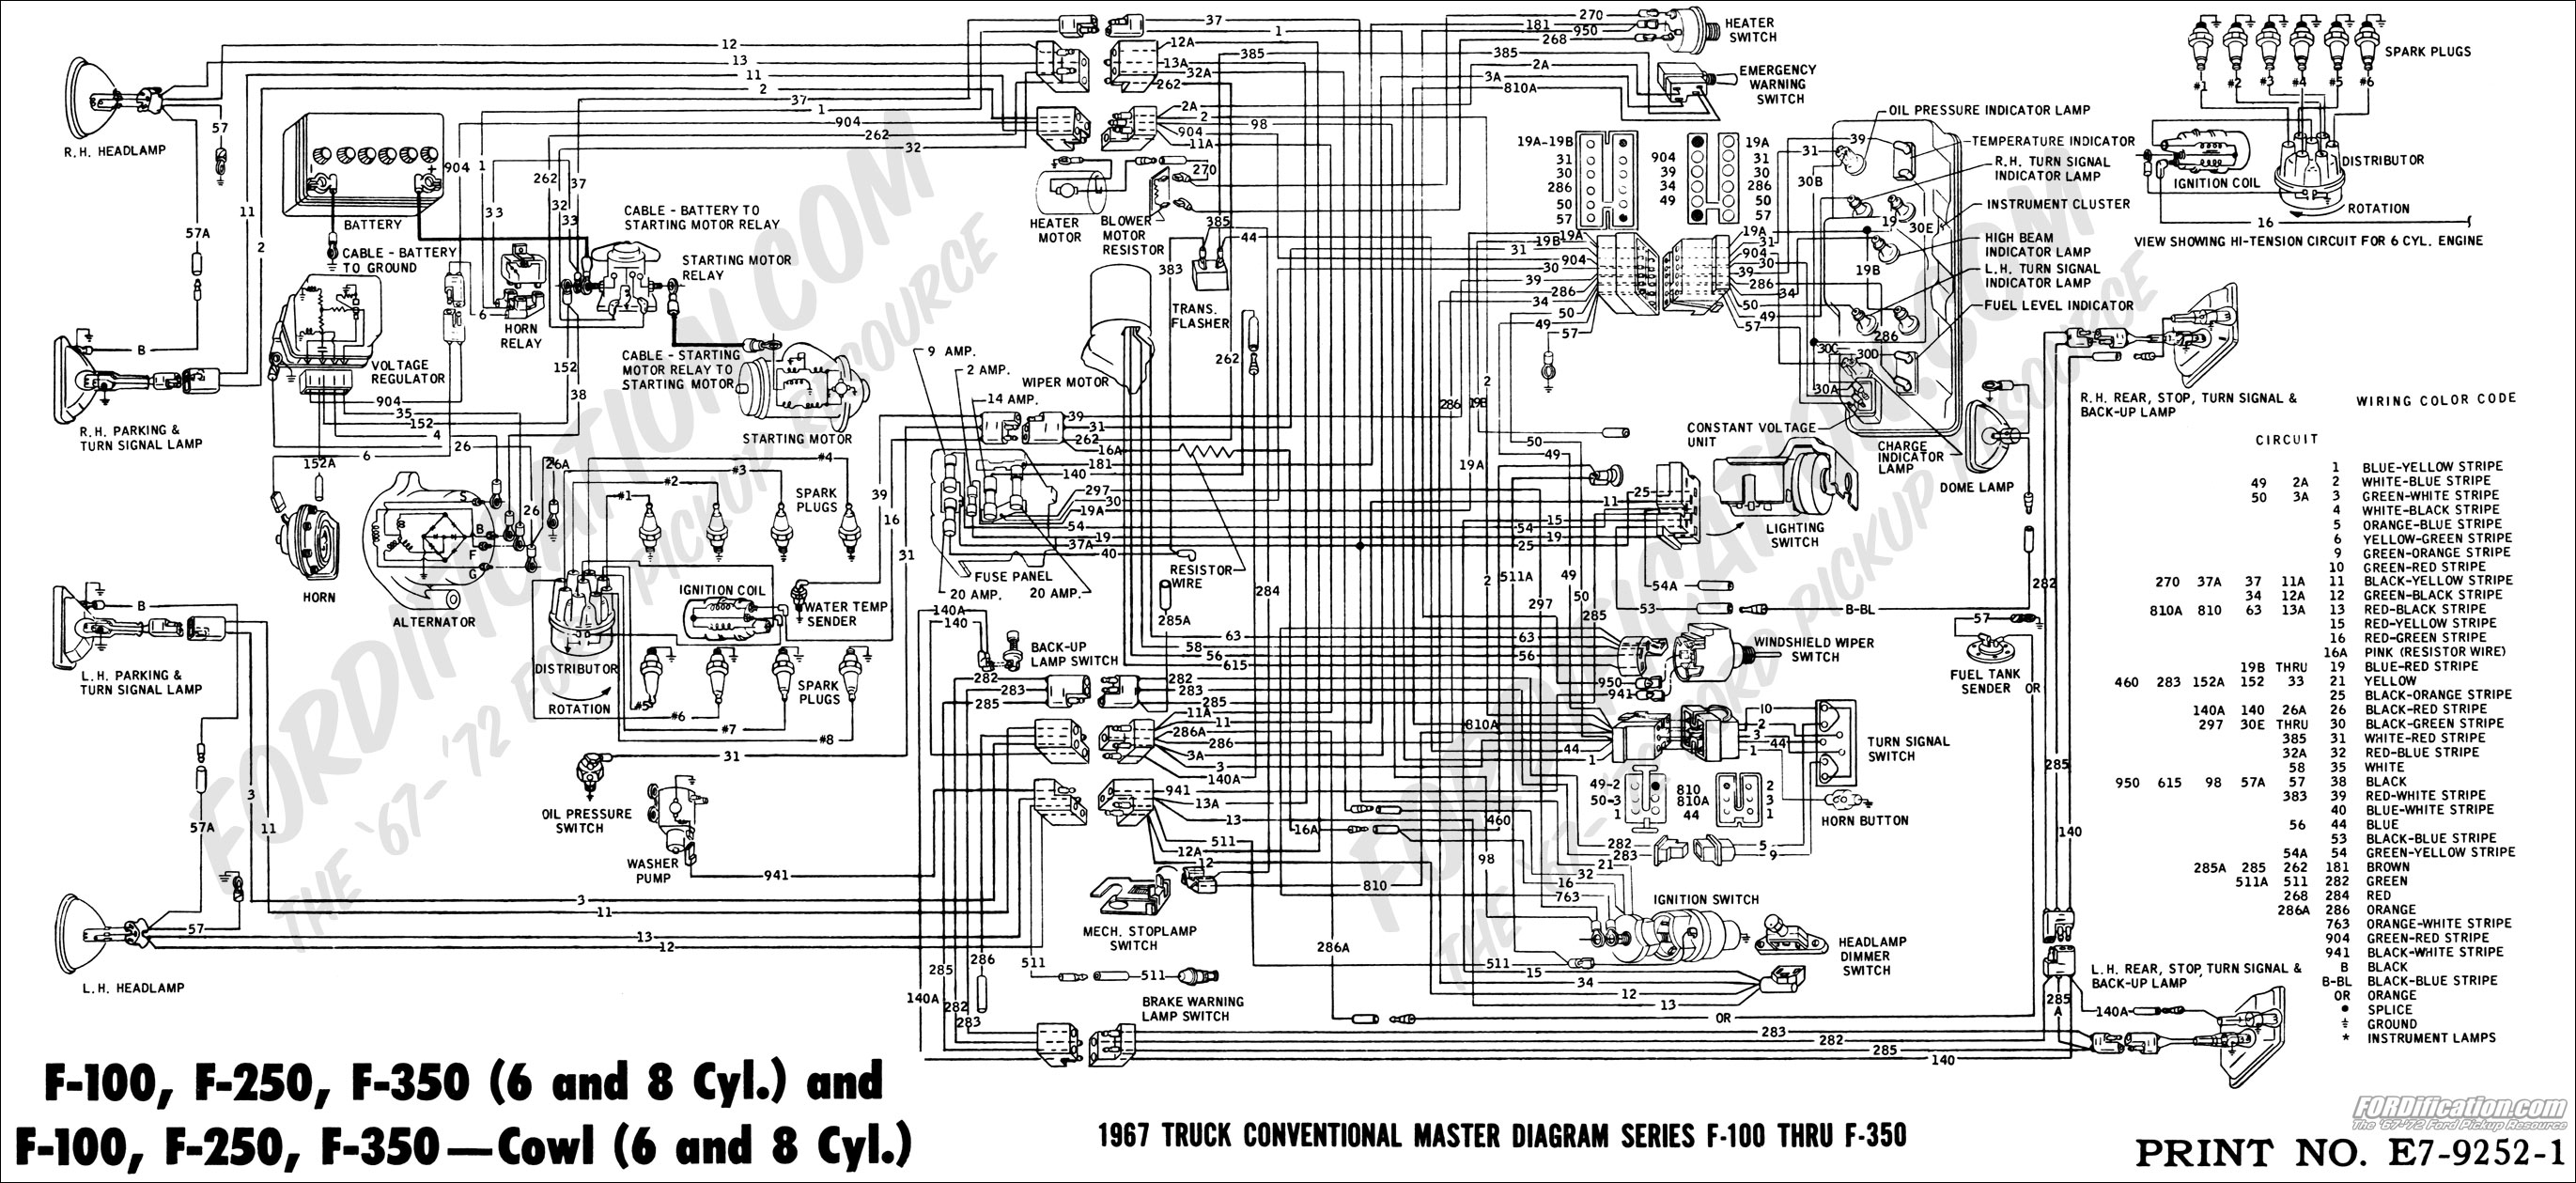 67masterdiagram ford truck technical drawings and schematics section h wiring 2007 f250 wiring diagram at pacquiaovsvargaslive.co